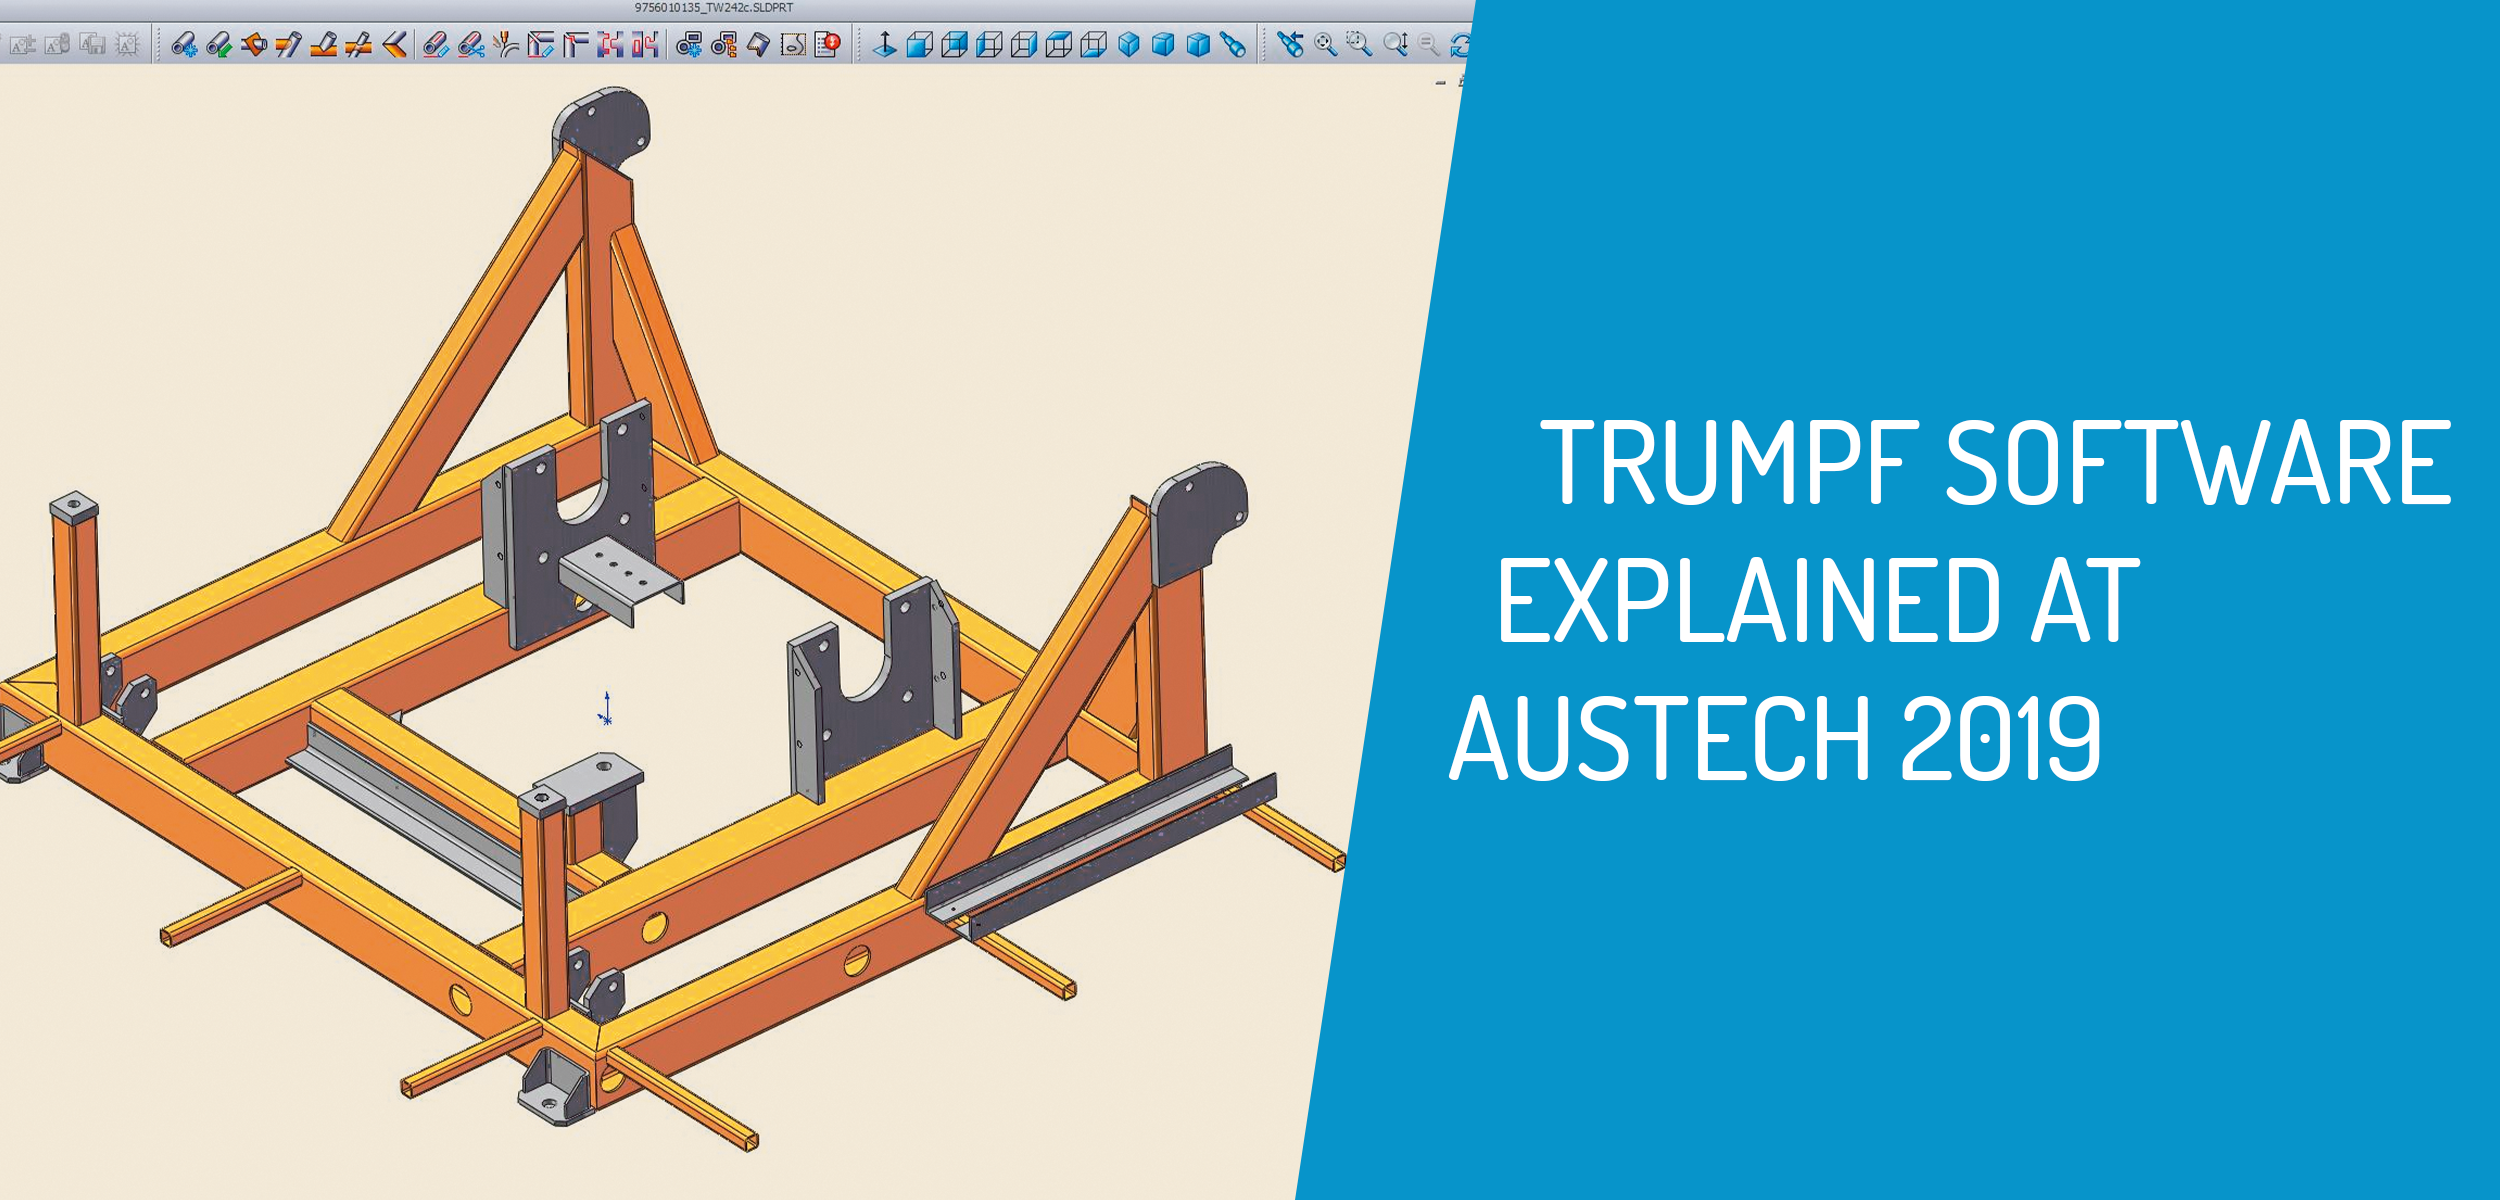 TRUMPF Software Explained